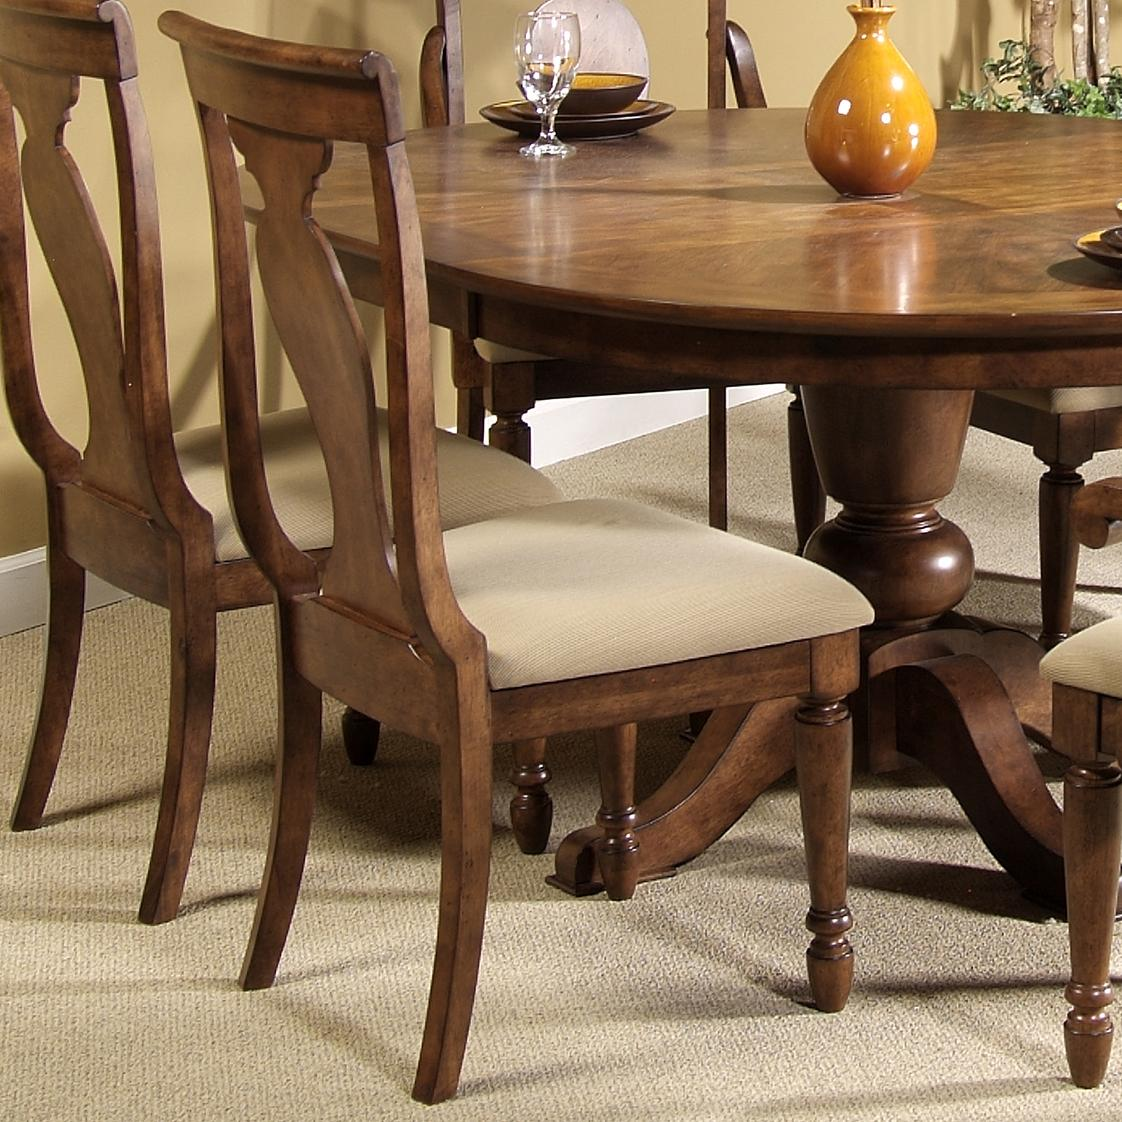 Liberty Furniture Rustic Traditions Splat Back Side Chair - Item Number: 589-C2501S